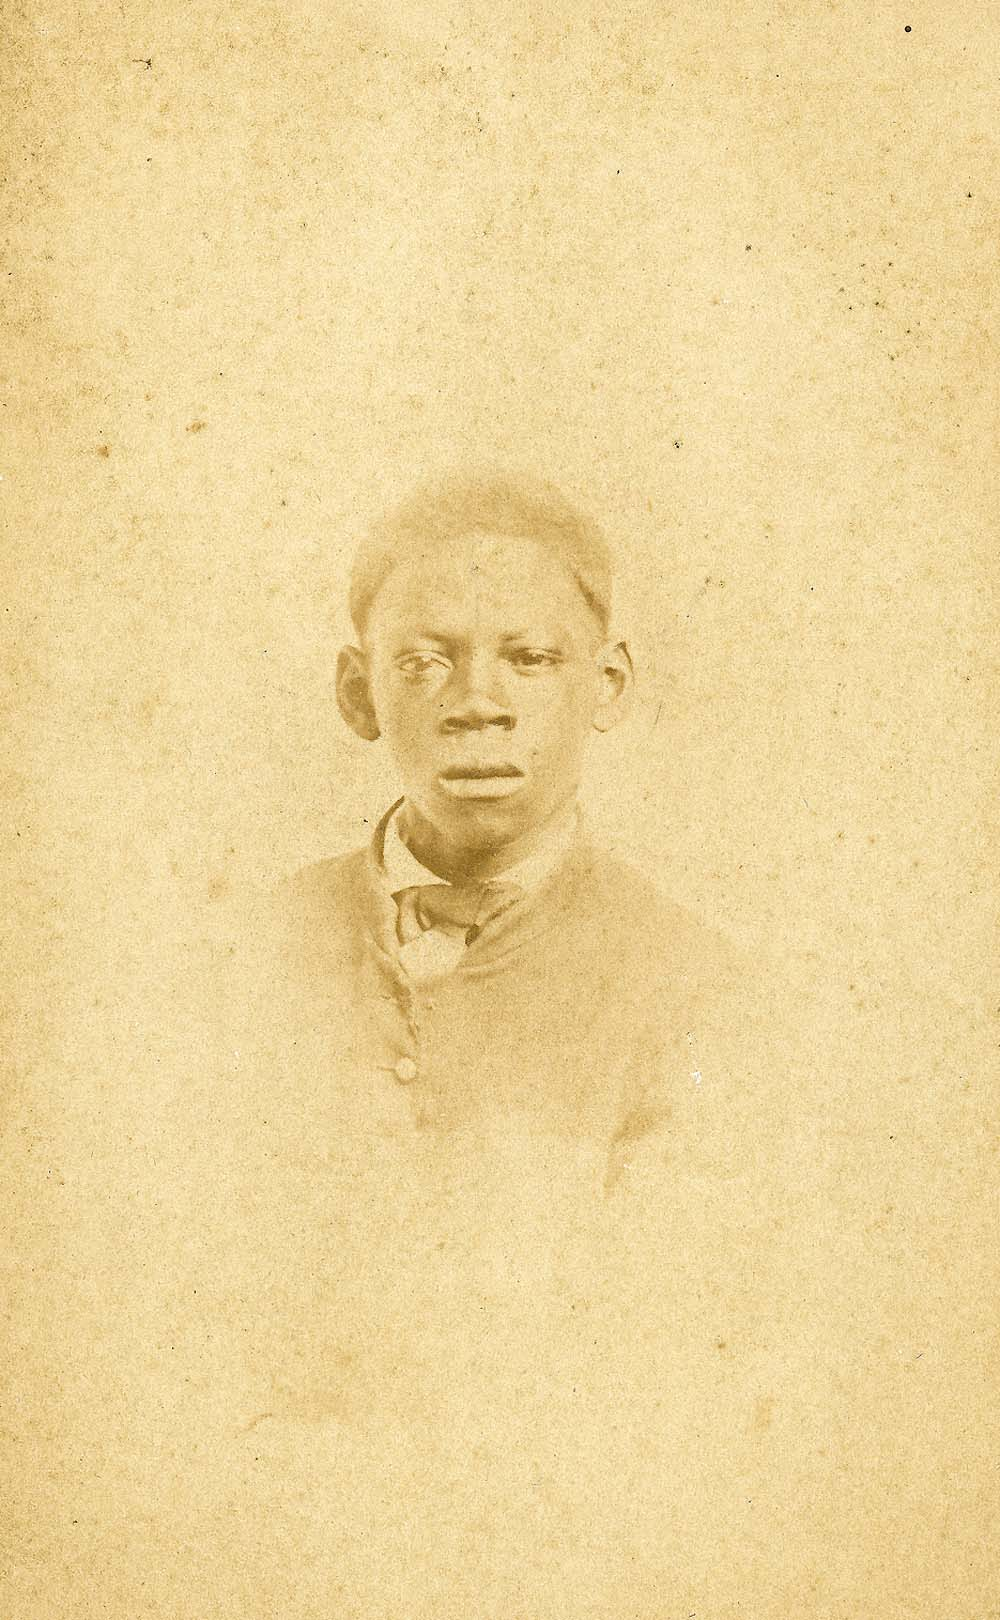 a faded photograph of a young black boy wearing a suit